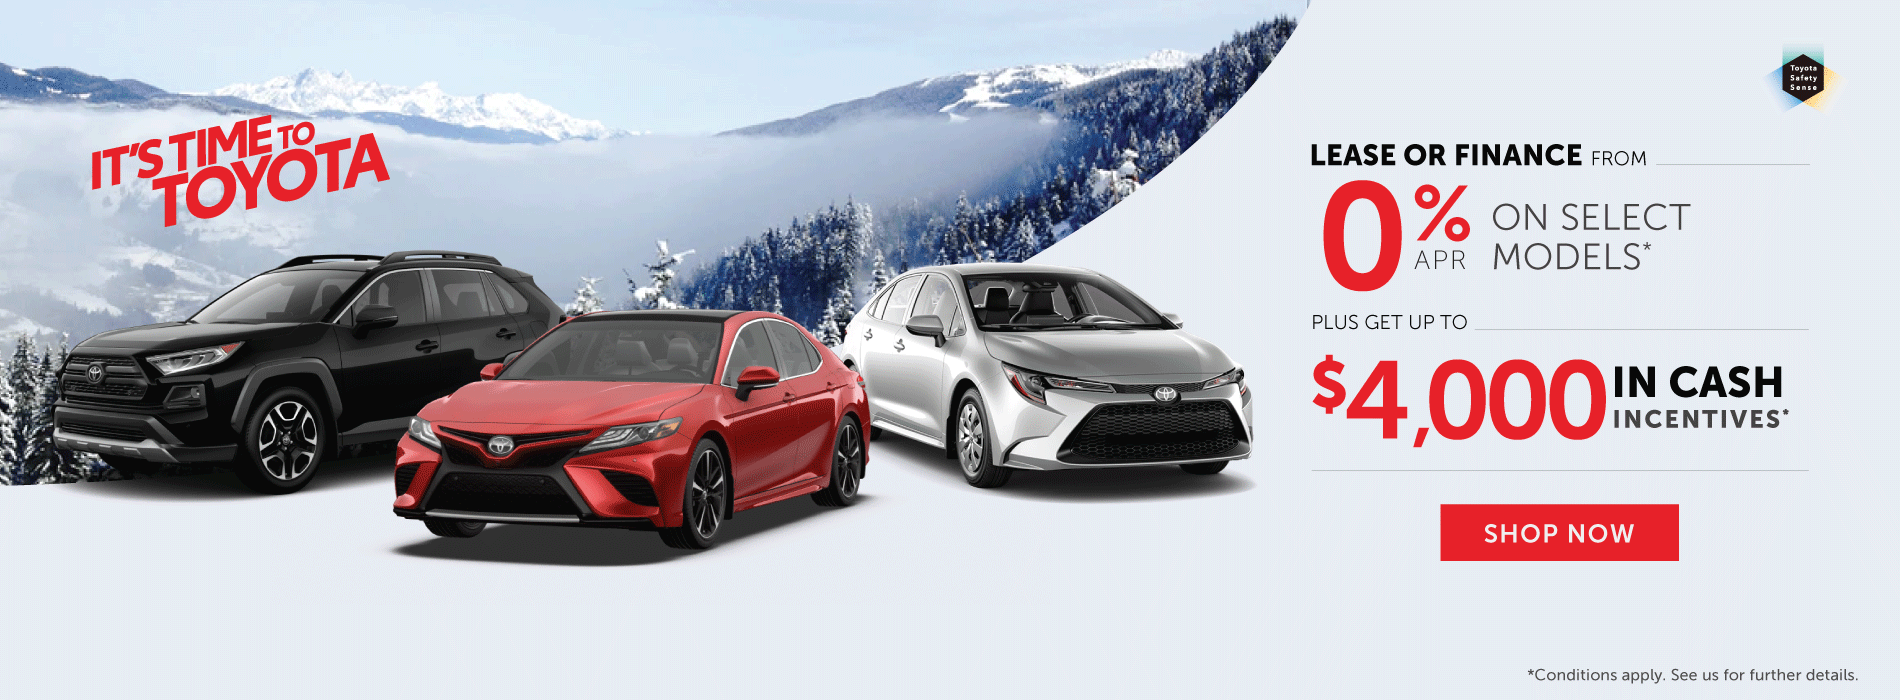 It's Time To Toyota - Toyota deals in Orangeville